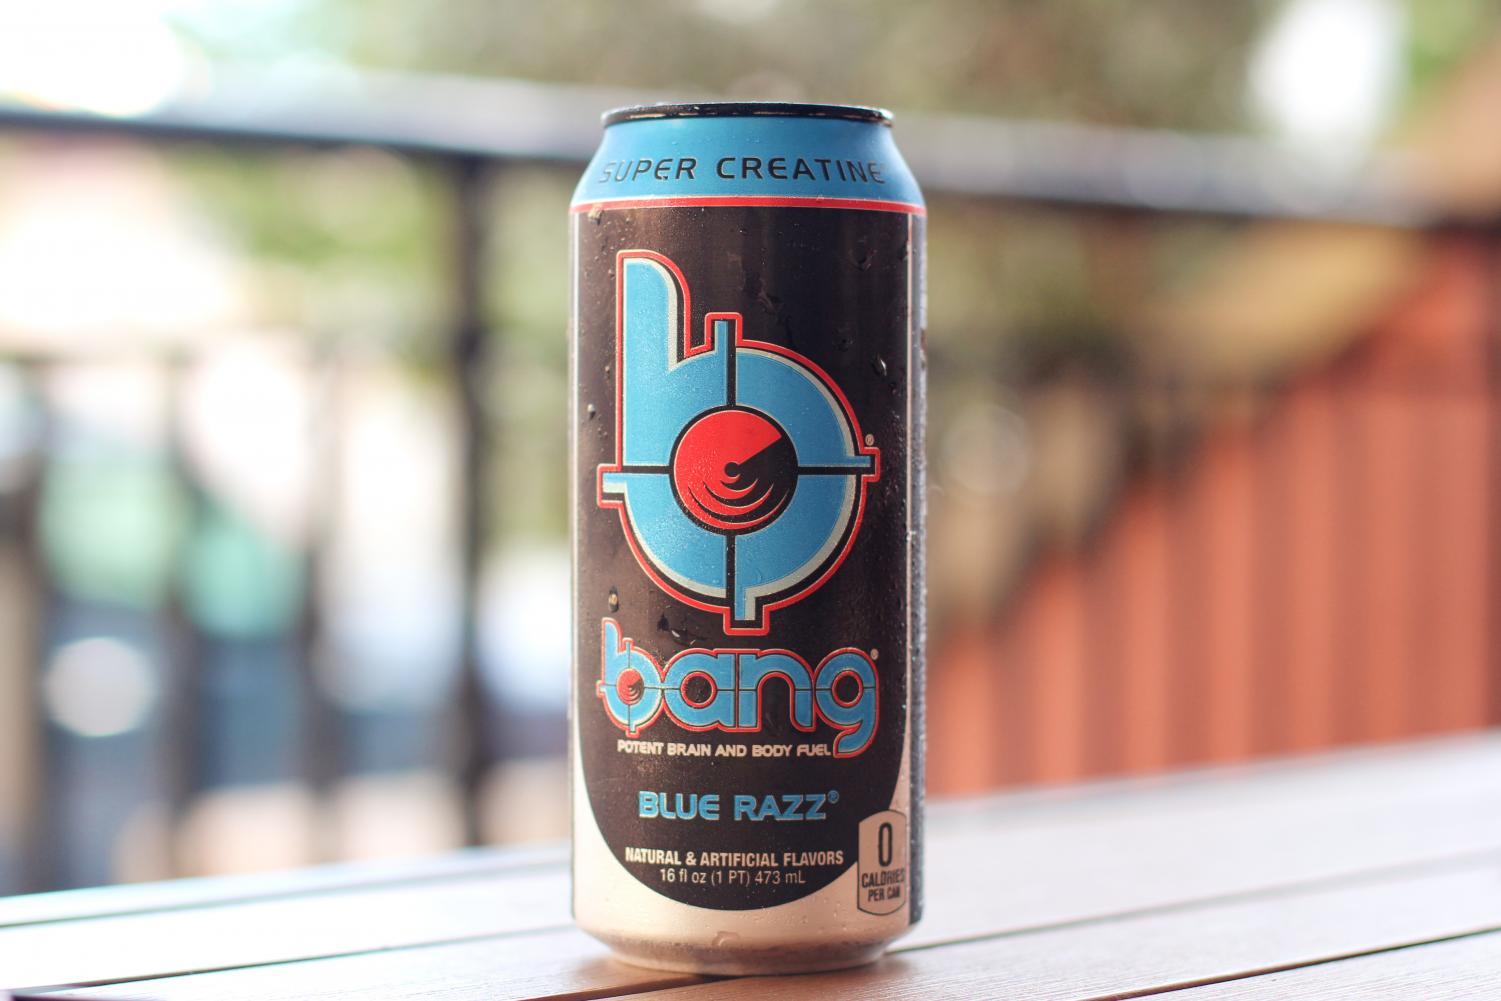 OUT WITH A BANG: RISING ADDICTION TO THE NEWEST CAFFEINATED DRINK